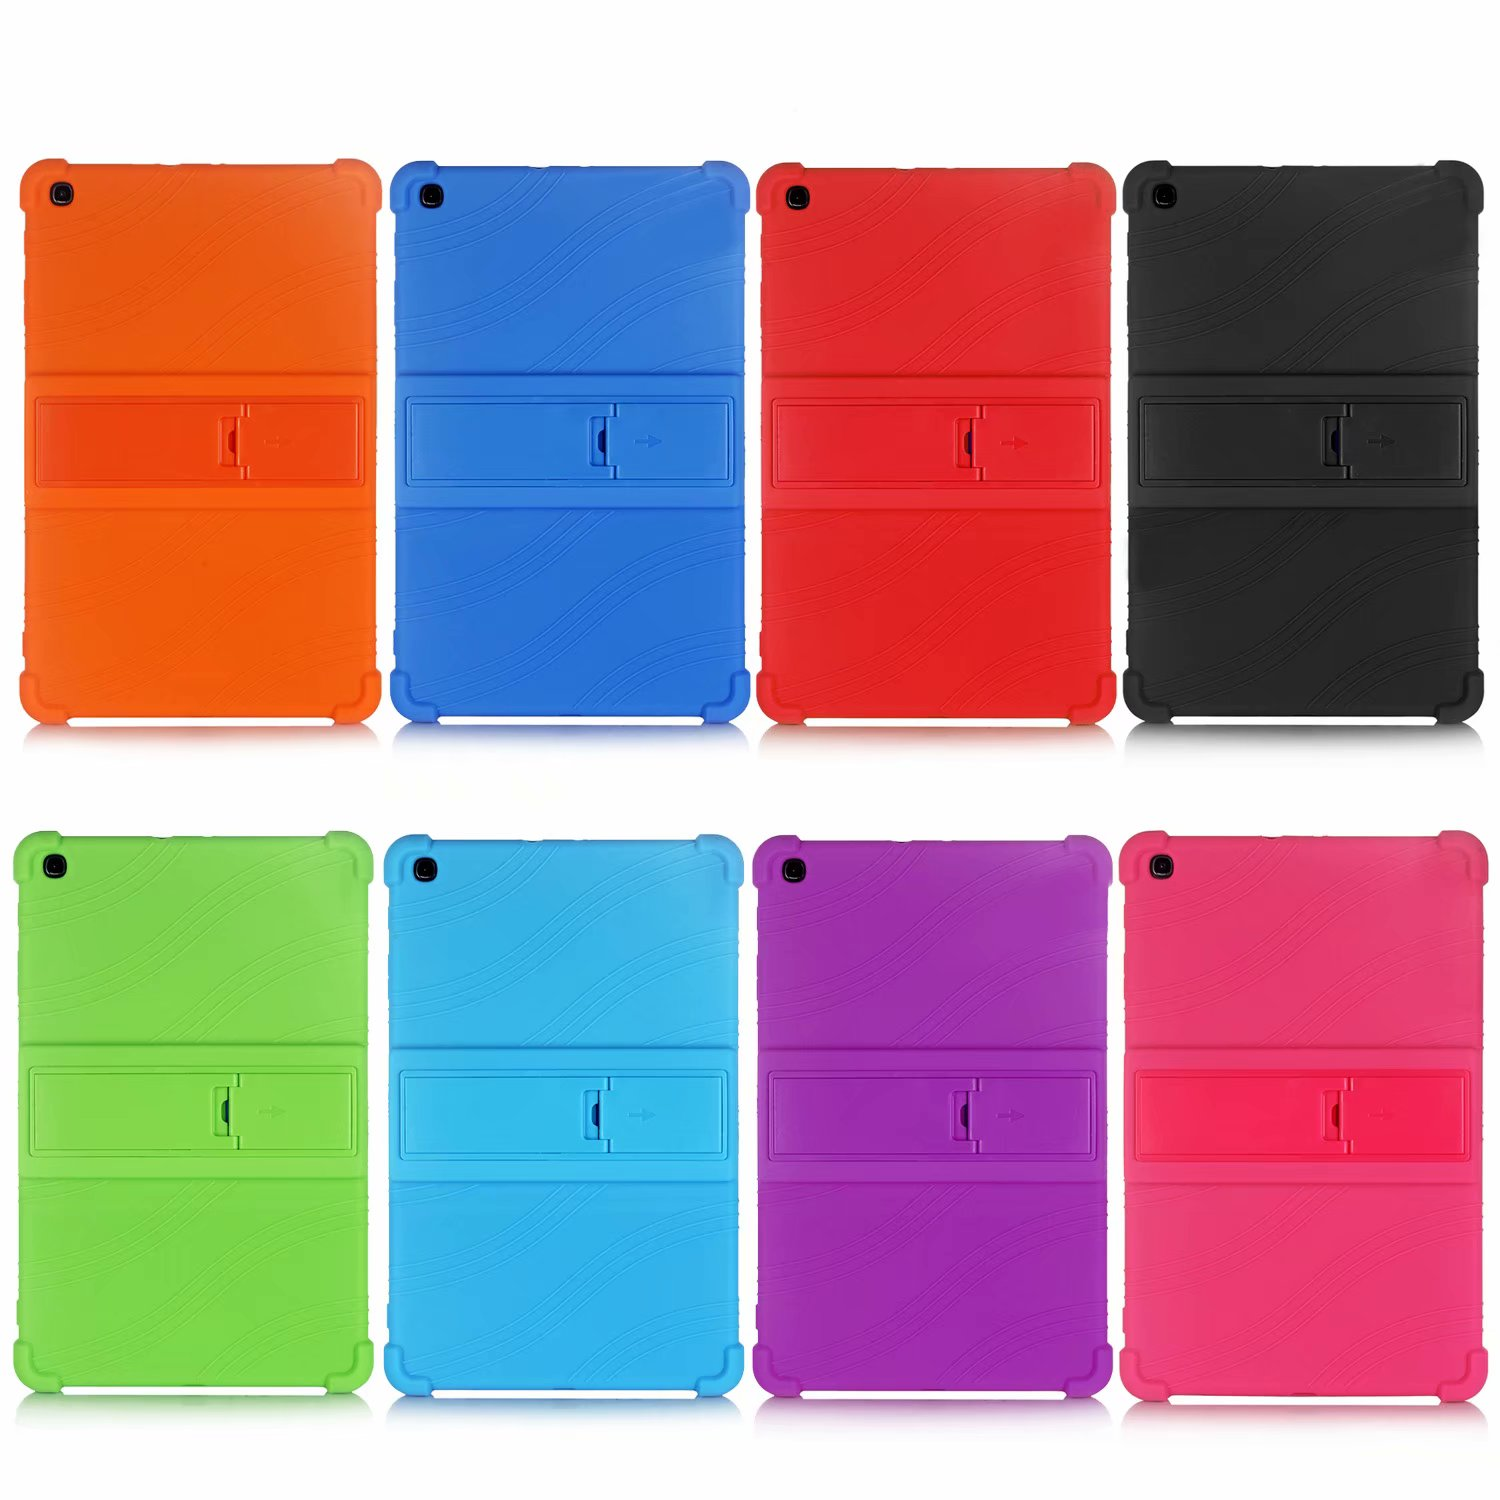 Shockproof Silicon Cover Case For Samsung Tab A 10.1''2019 Tablet case for Samsung Galaxy Tab A 2019 SM-T510 SM-T515 T510 Funda image